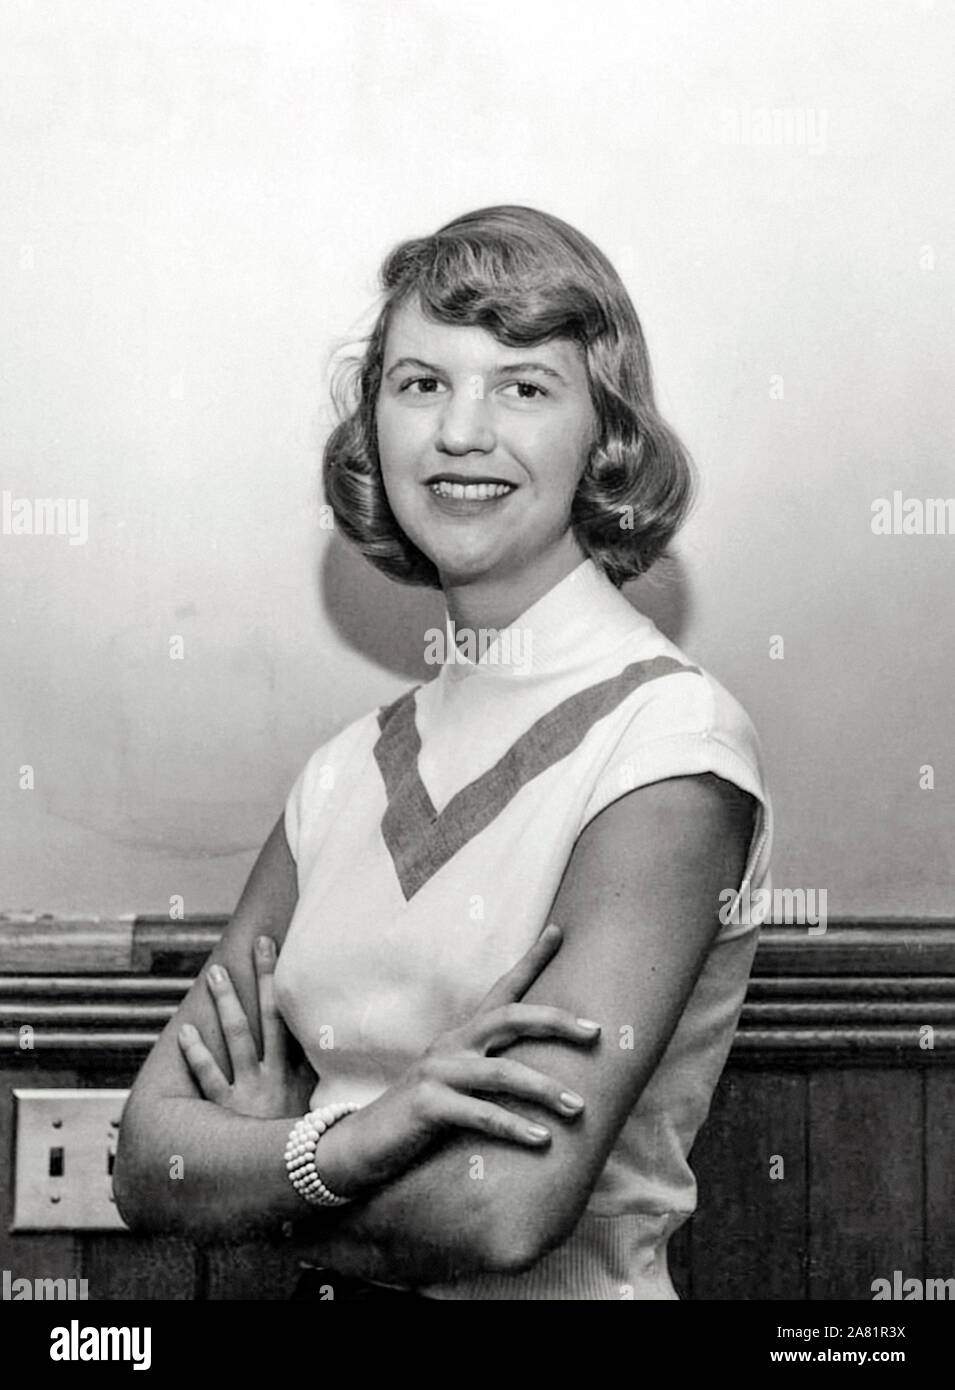 Sylvia Plath (1932-1963) American writer best remembered for her post-modernist confessional poetry and her semi-autobiographical novel The Bell Jar about a woman suffering from mental illness published under the pseudonym Victoria Lucas, a month before she committed suicide. Stock Photo